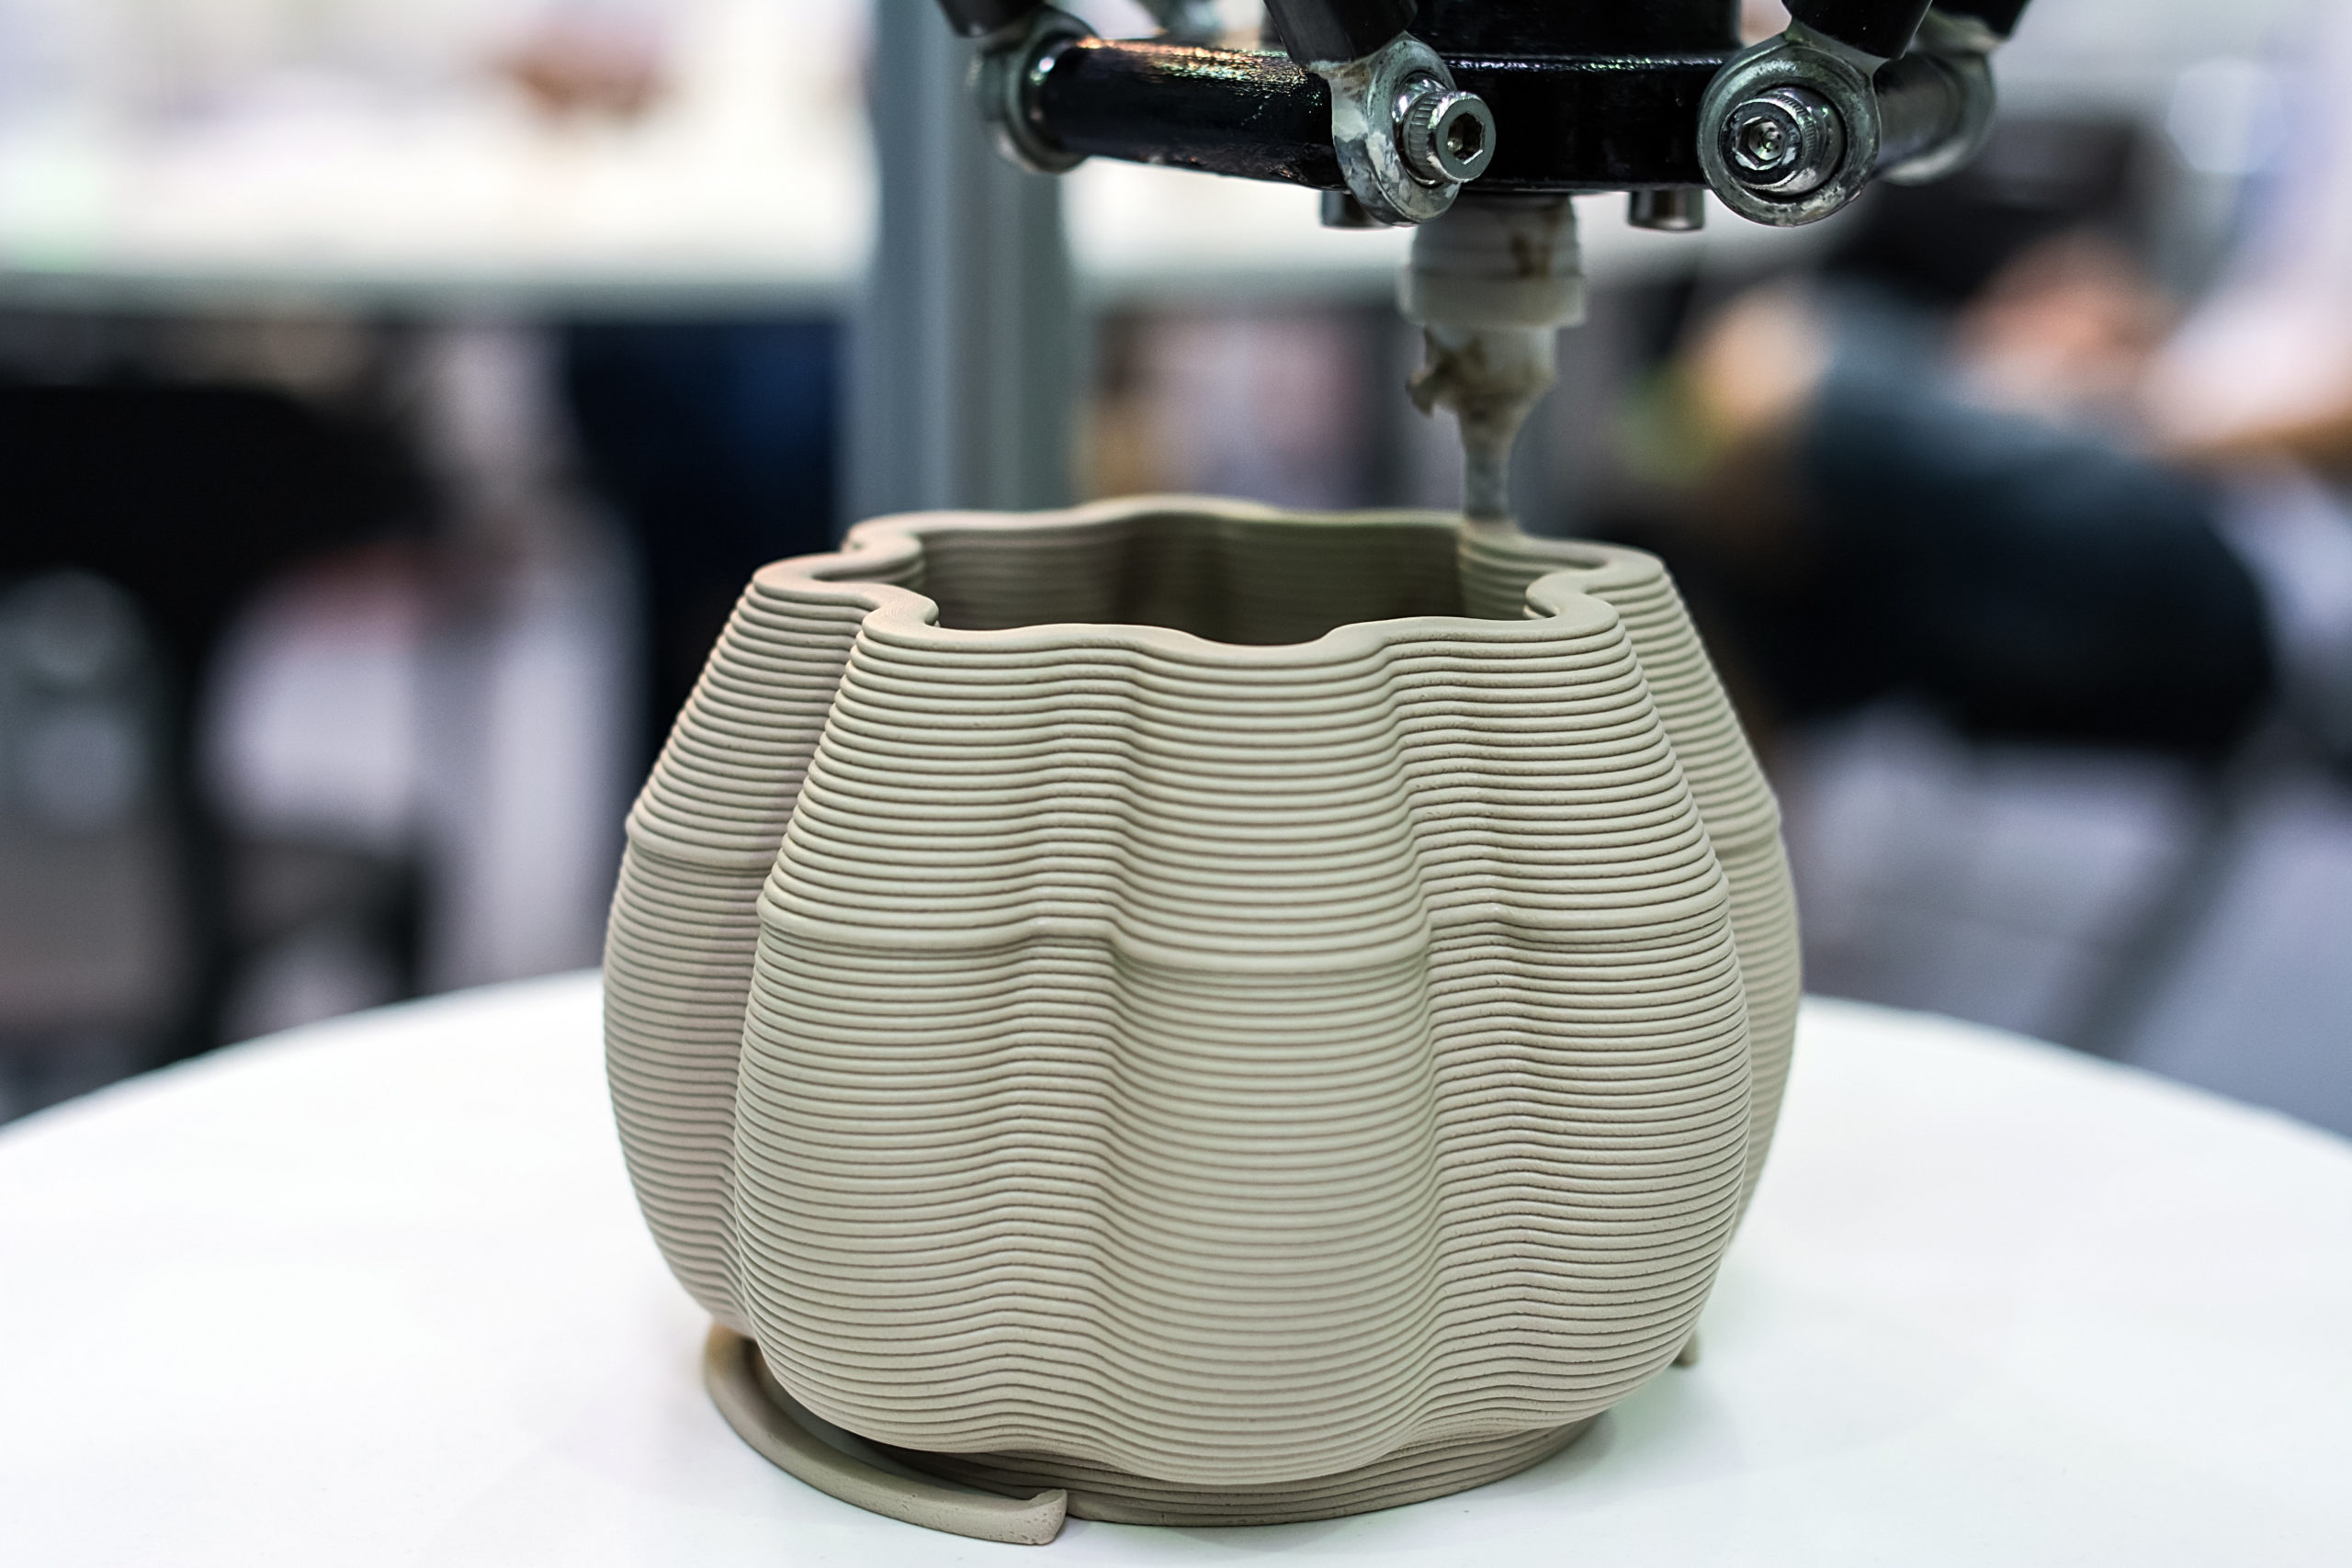 3D printed ceramic ware / 3D printer